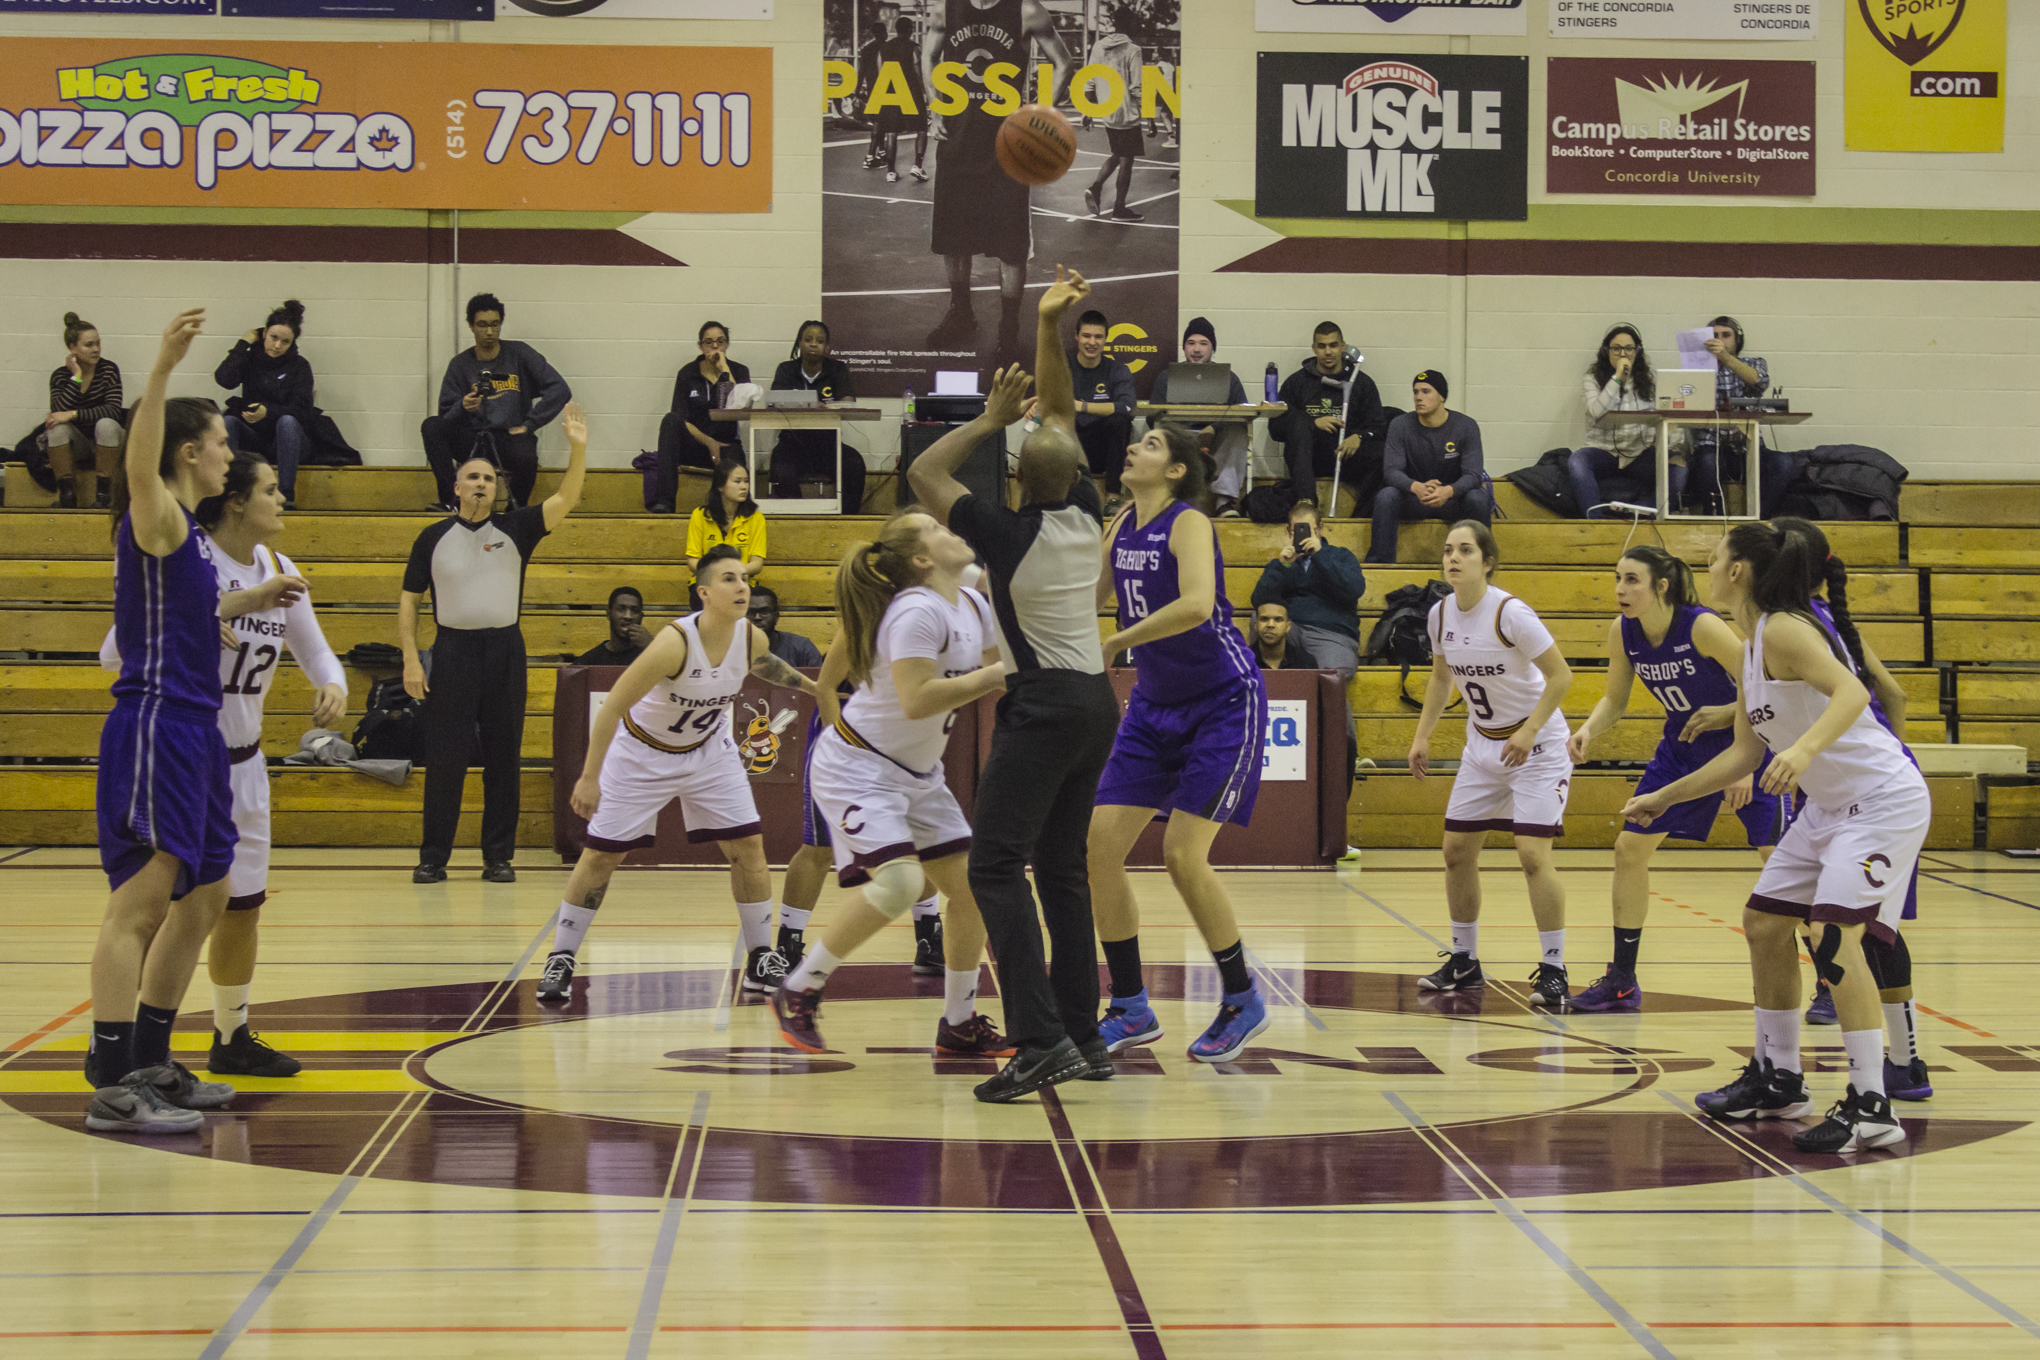 Concordia basketball stings Gaiters at home - The Concordian